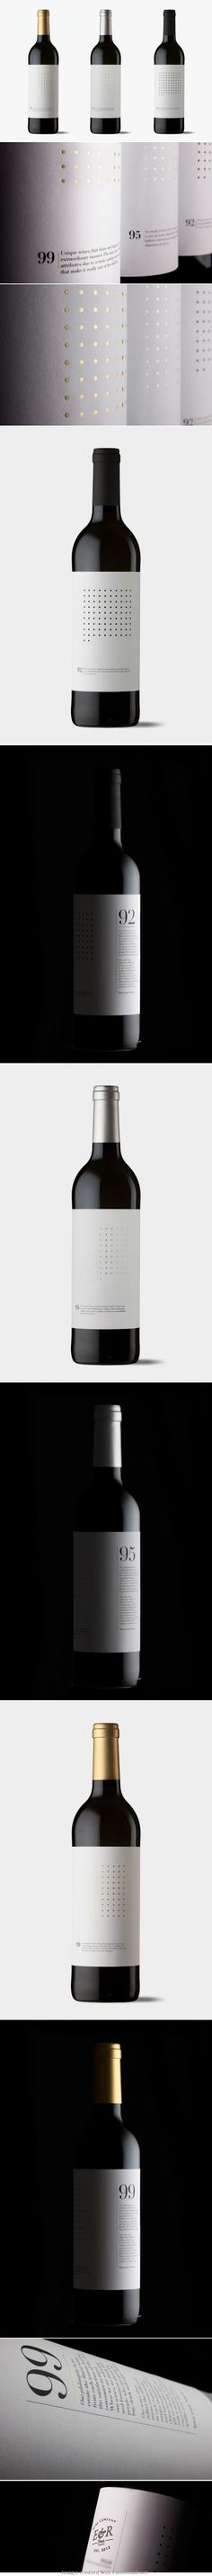 Dotted Grid Wines more #wine #packaging love : ) PD